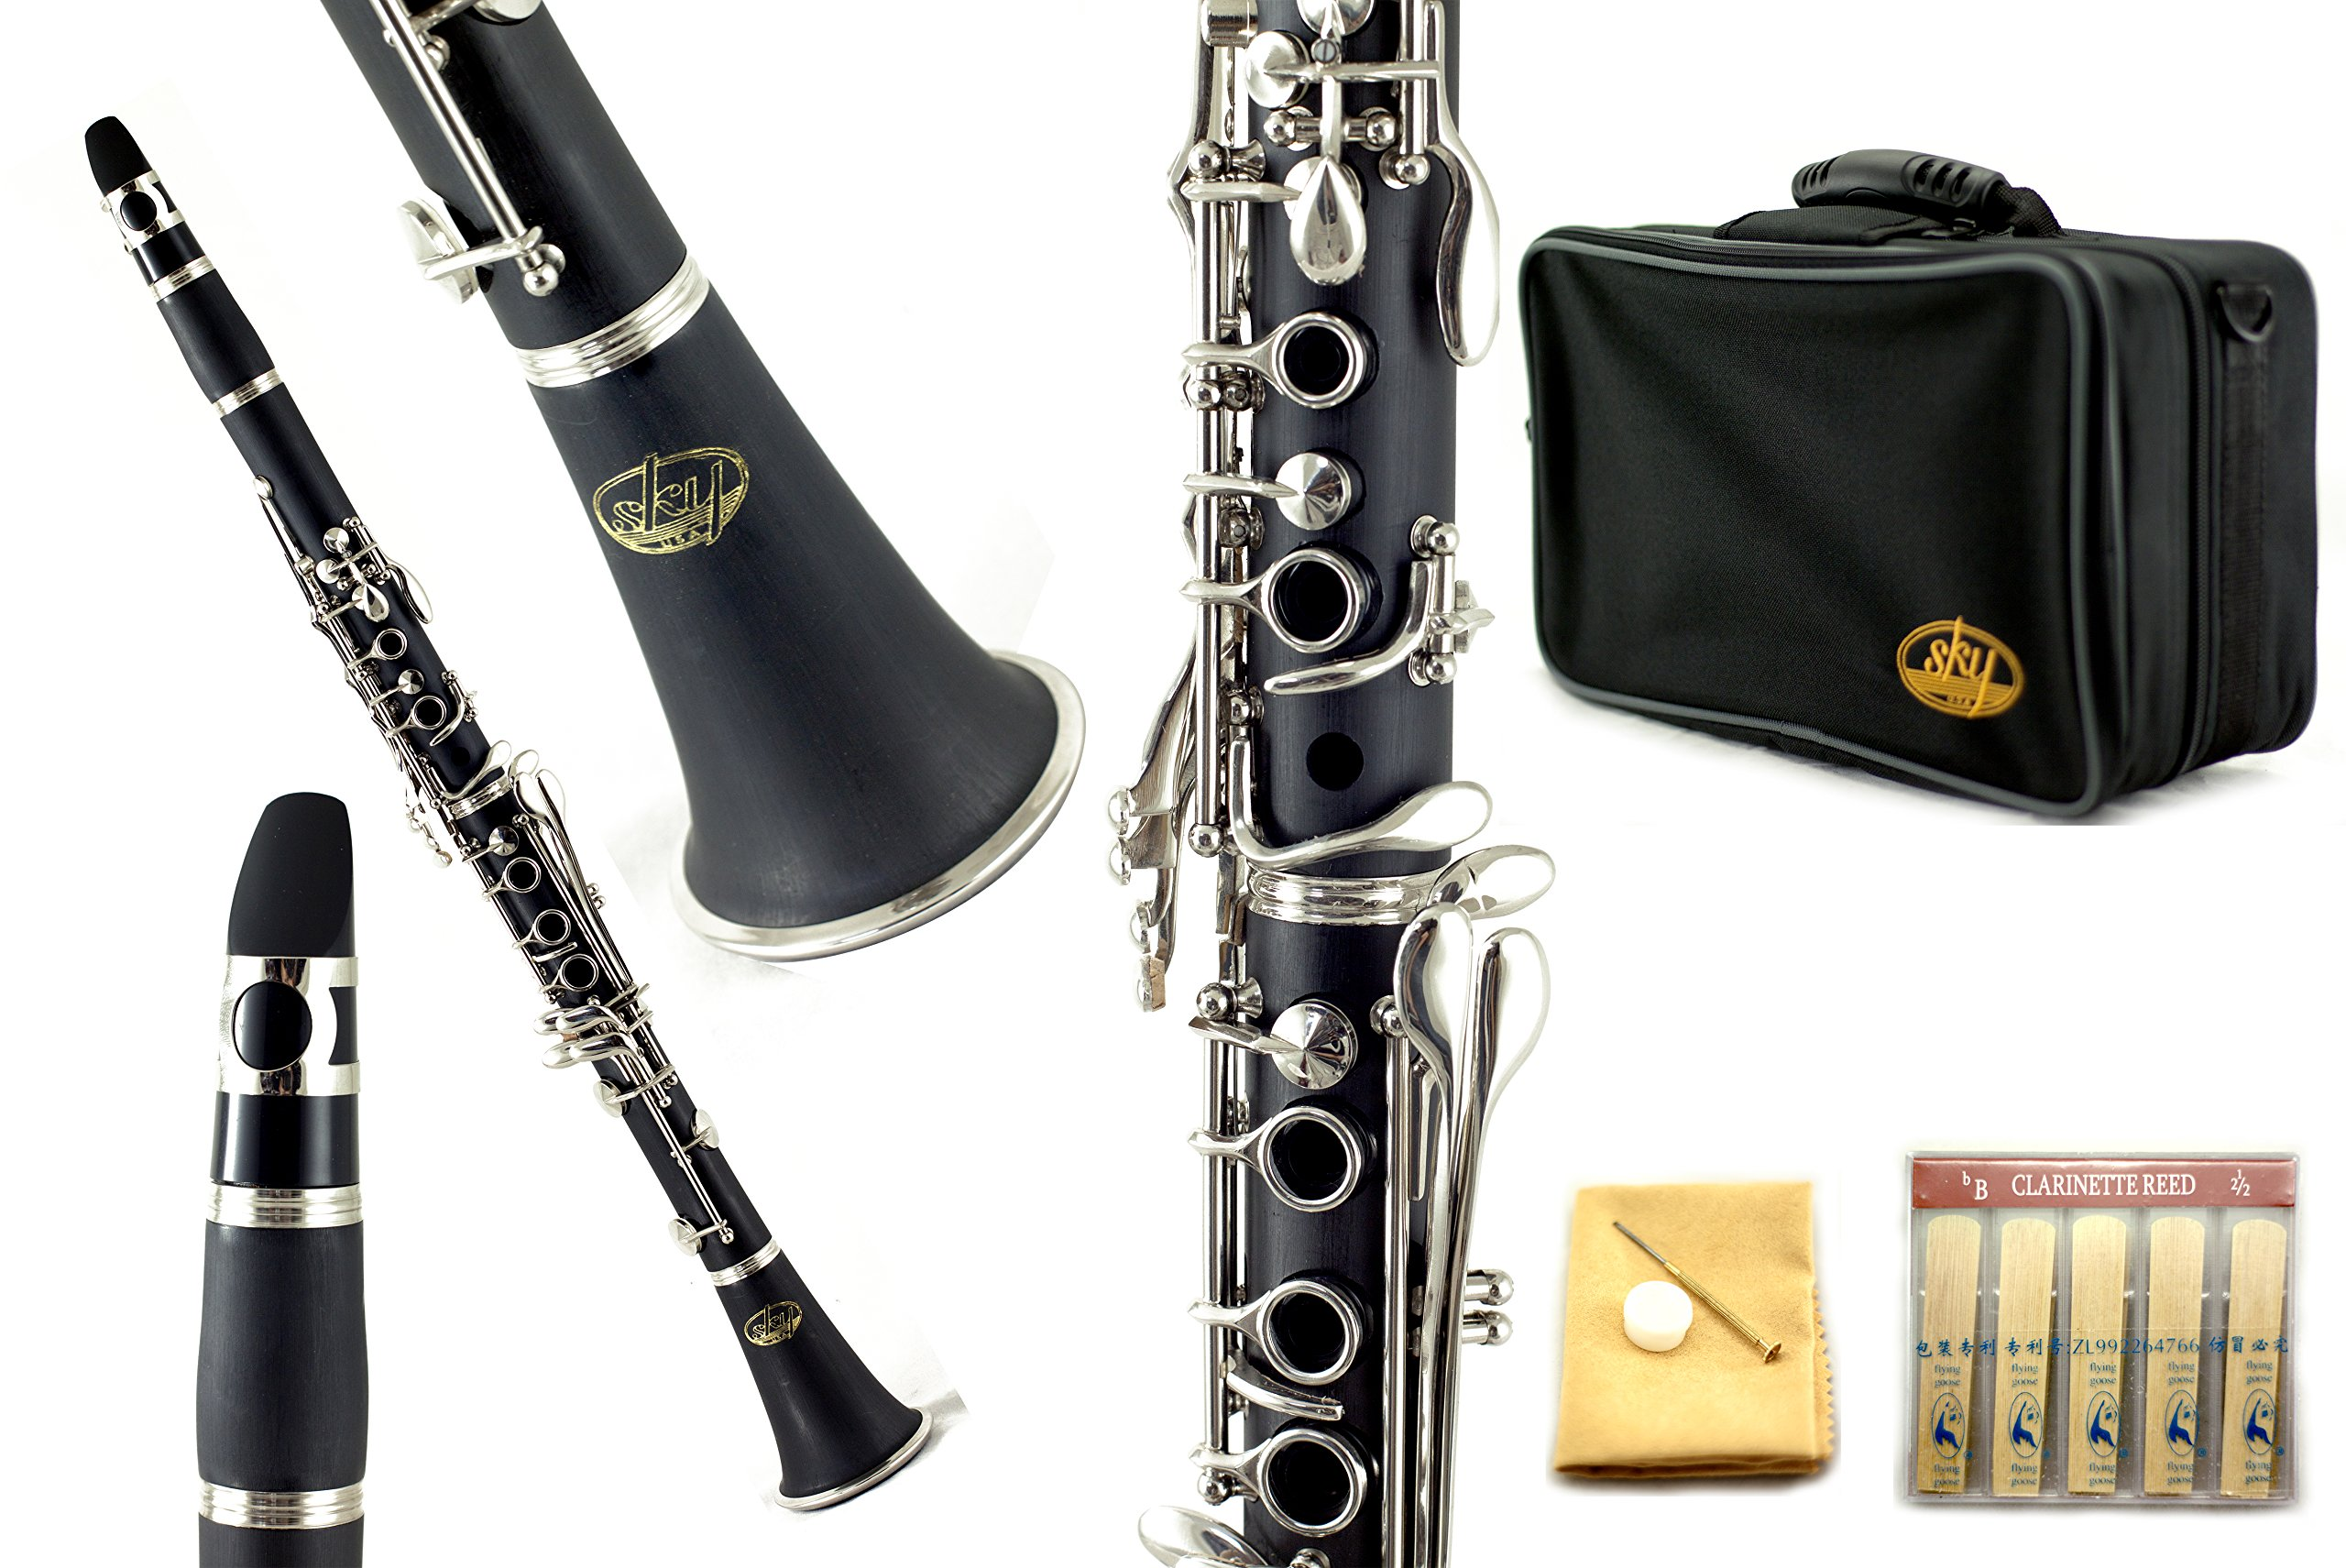 Sky Band Approved SKY-CLEBI-001 Black Ebonite B-flat Clarinet with Case, Mouthpiece, 10 Reeds, Cork Grease and Cleaning Cloth SOUND GUARANTEED by Sky